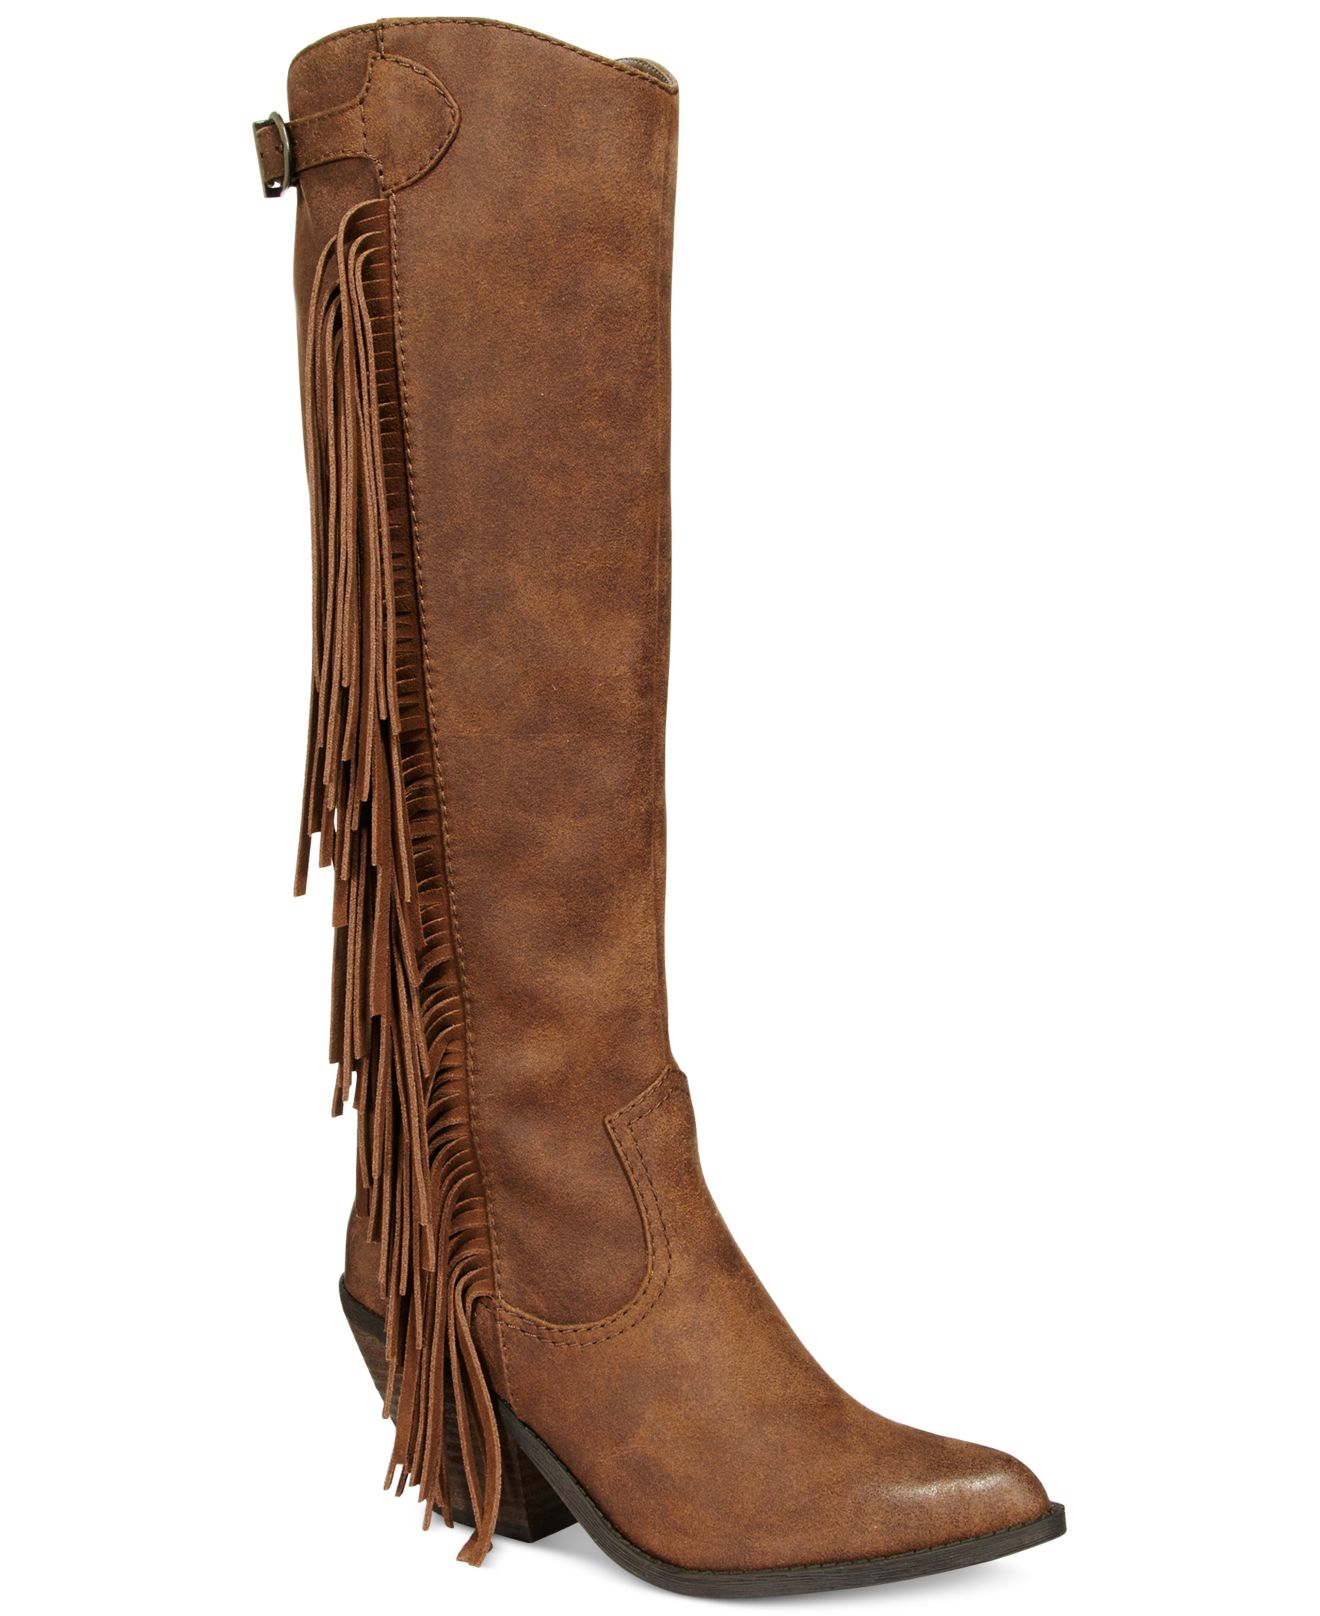 carlos by carlos santana lever fringe boots in brown lyst